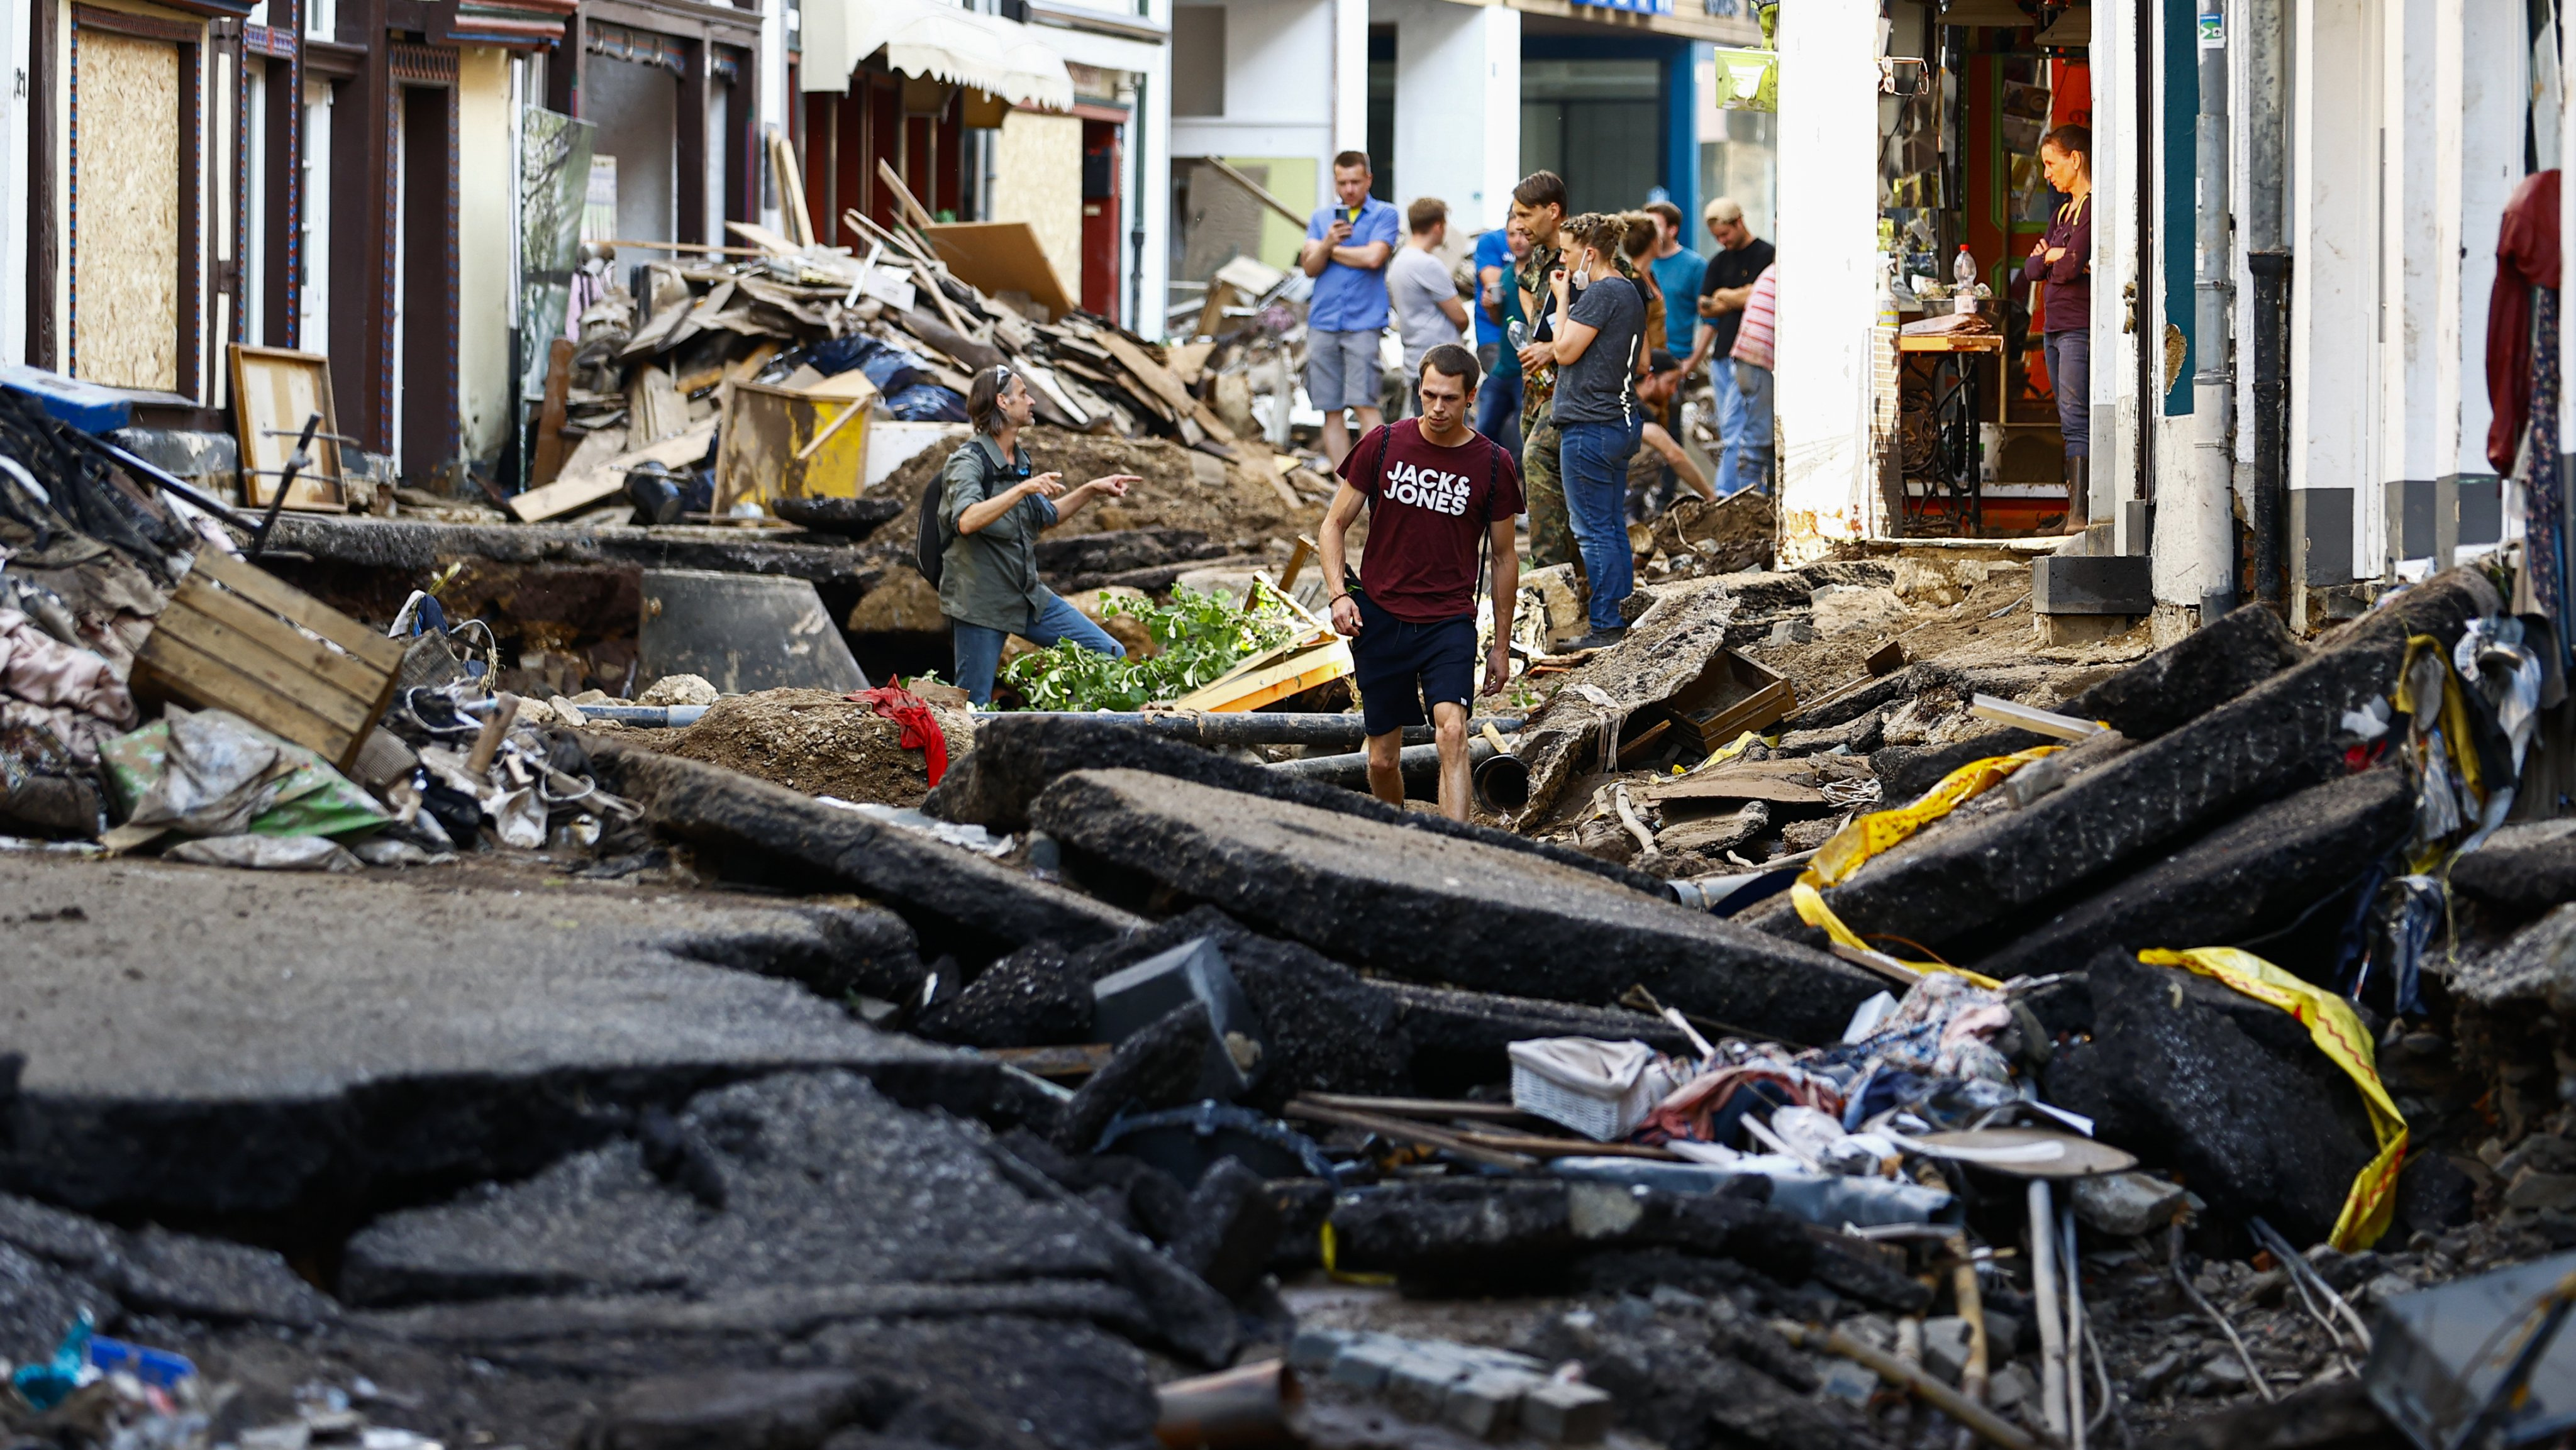 The death toll rises to 156 after the floods in Germany